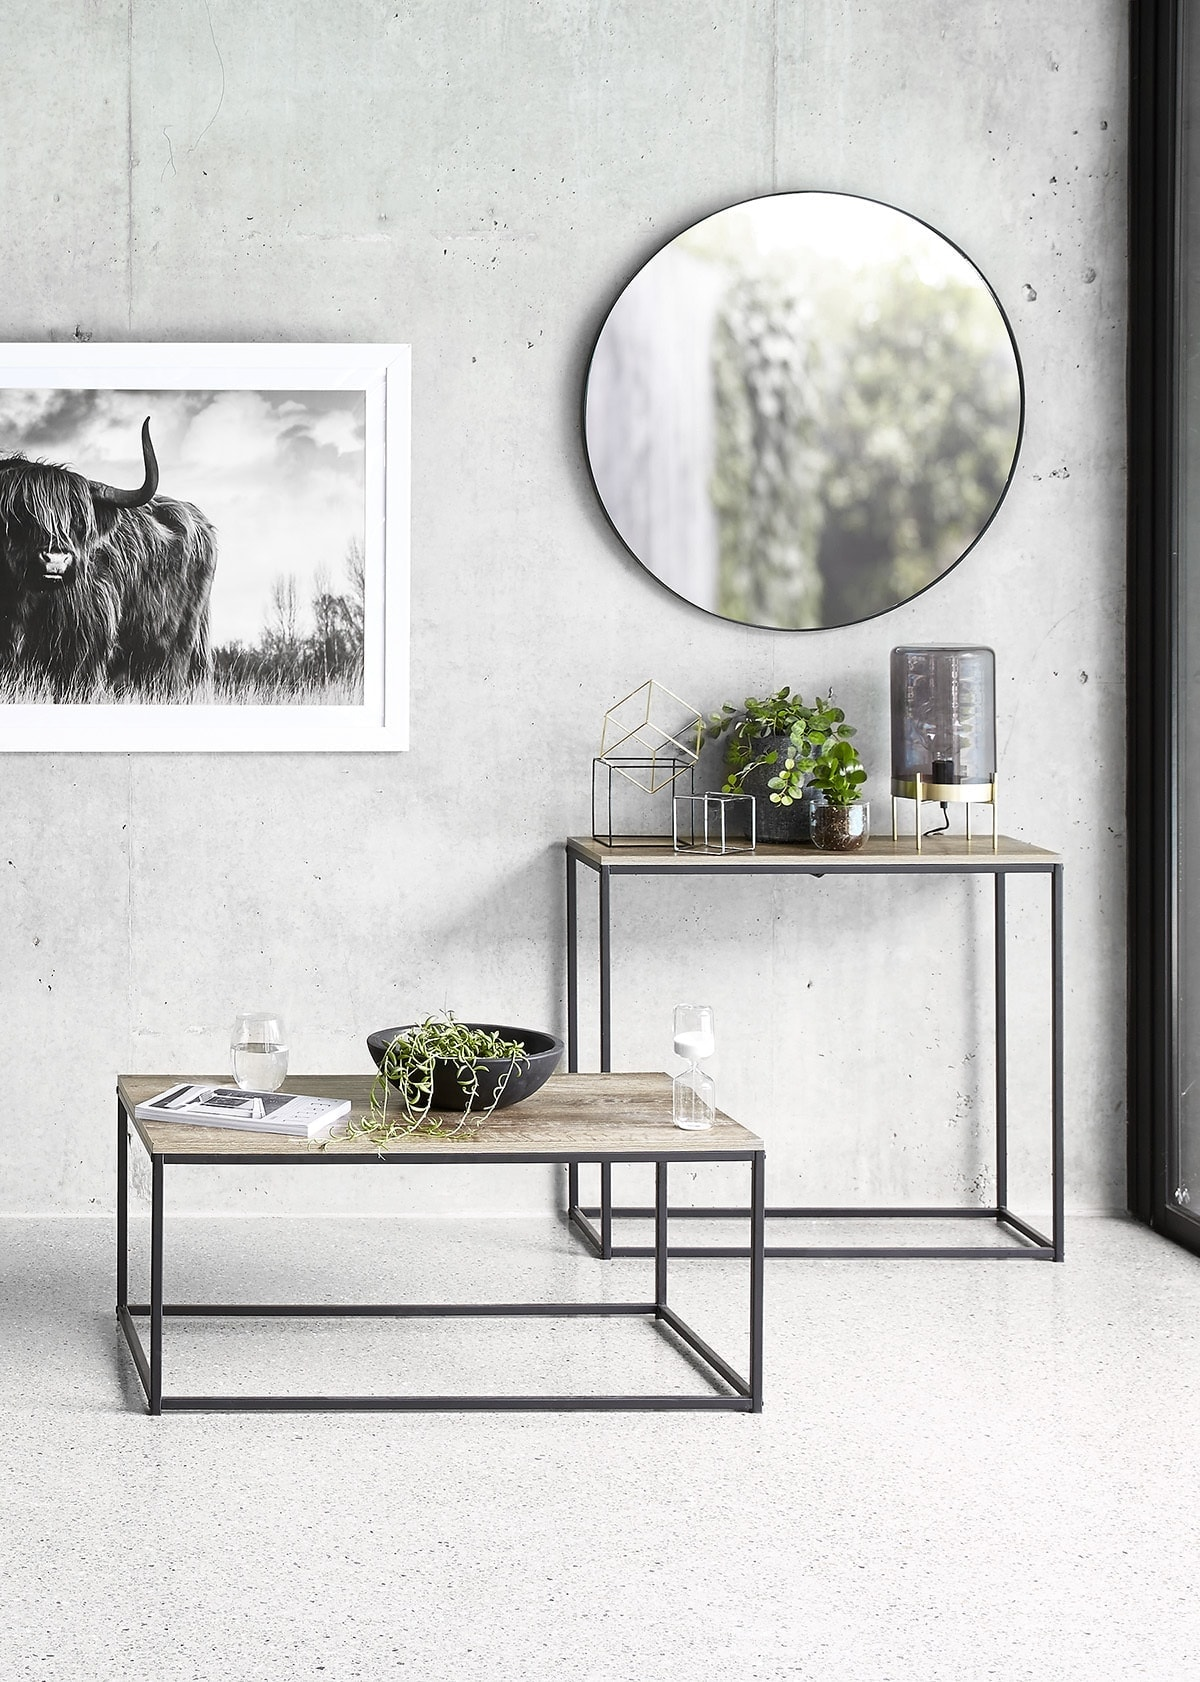 kmart industrial coffee table and side table in concrete floor living room